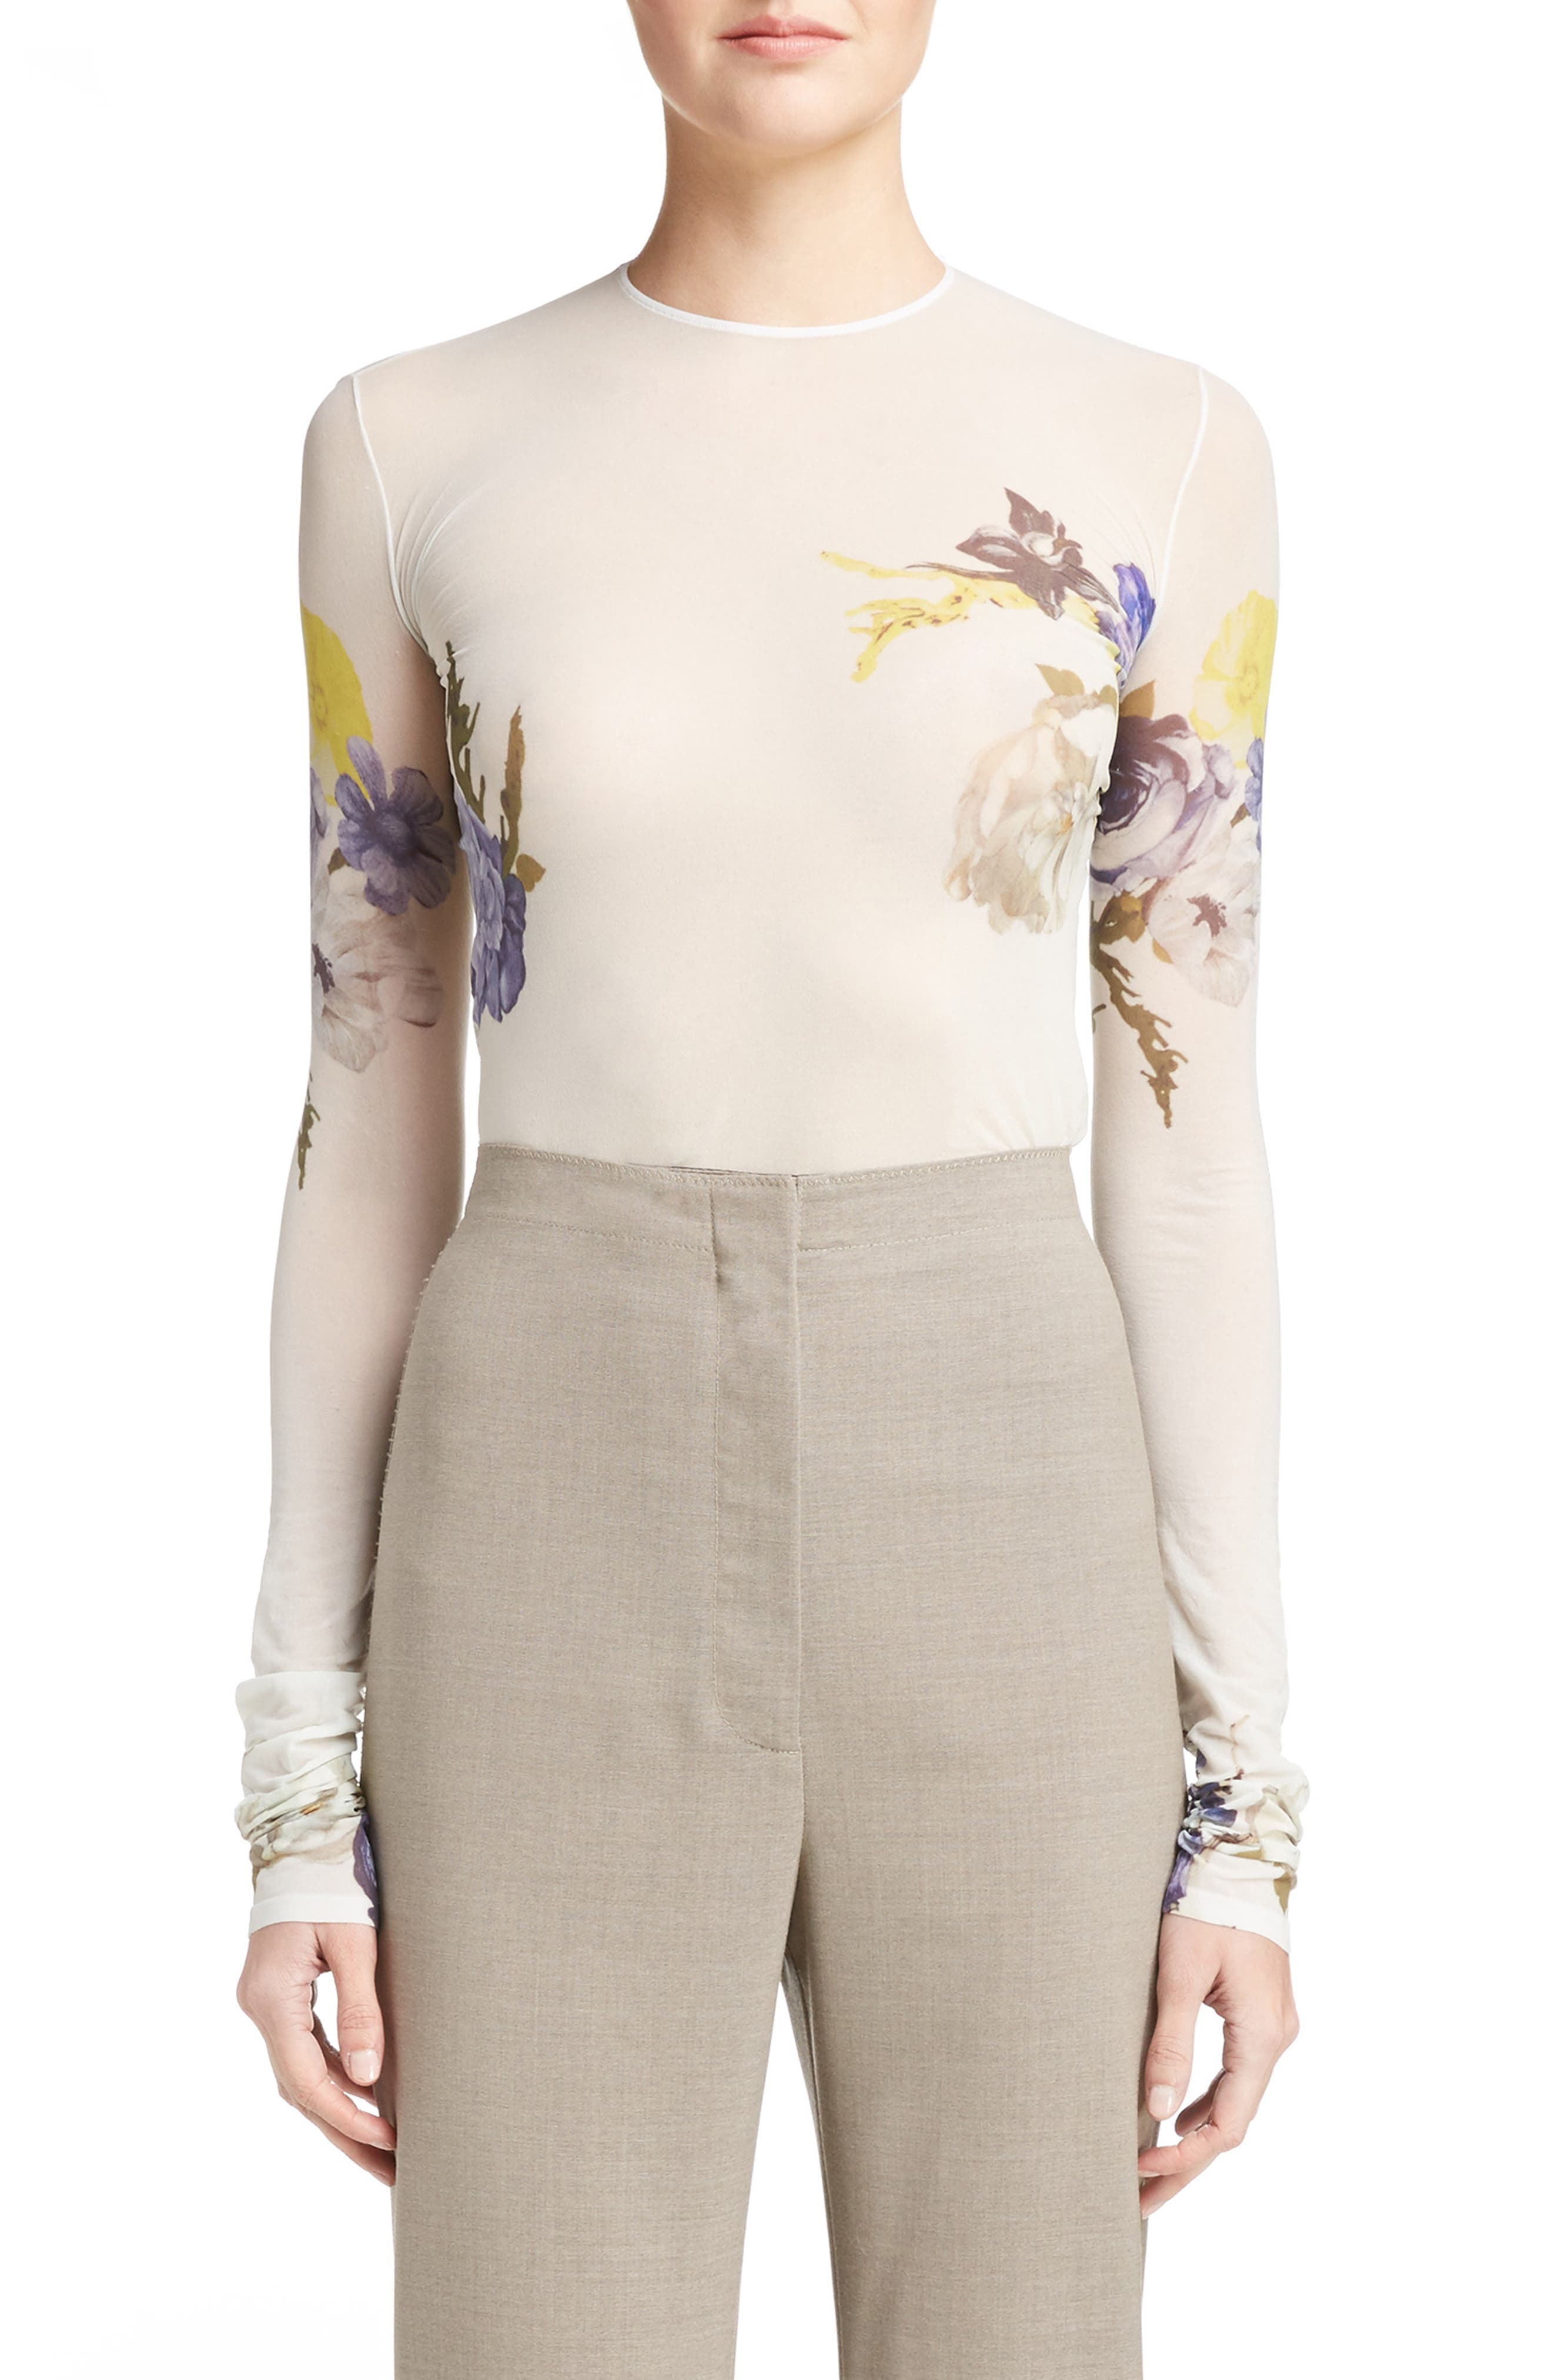 ACNE Studios Niala Sheer Floral Top